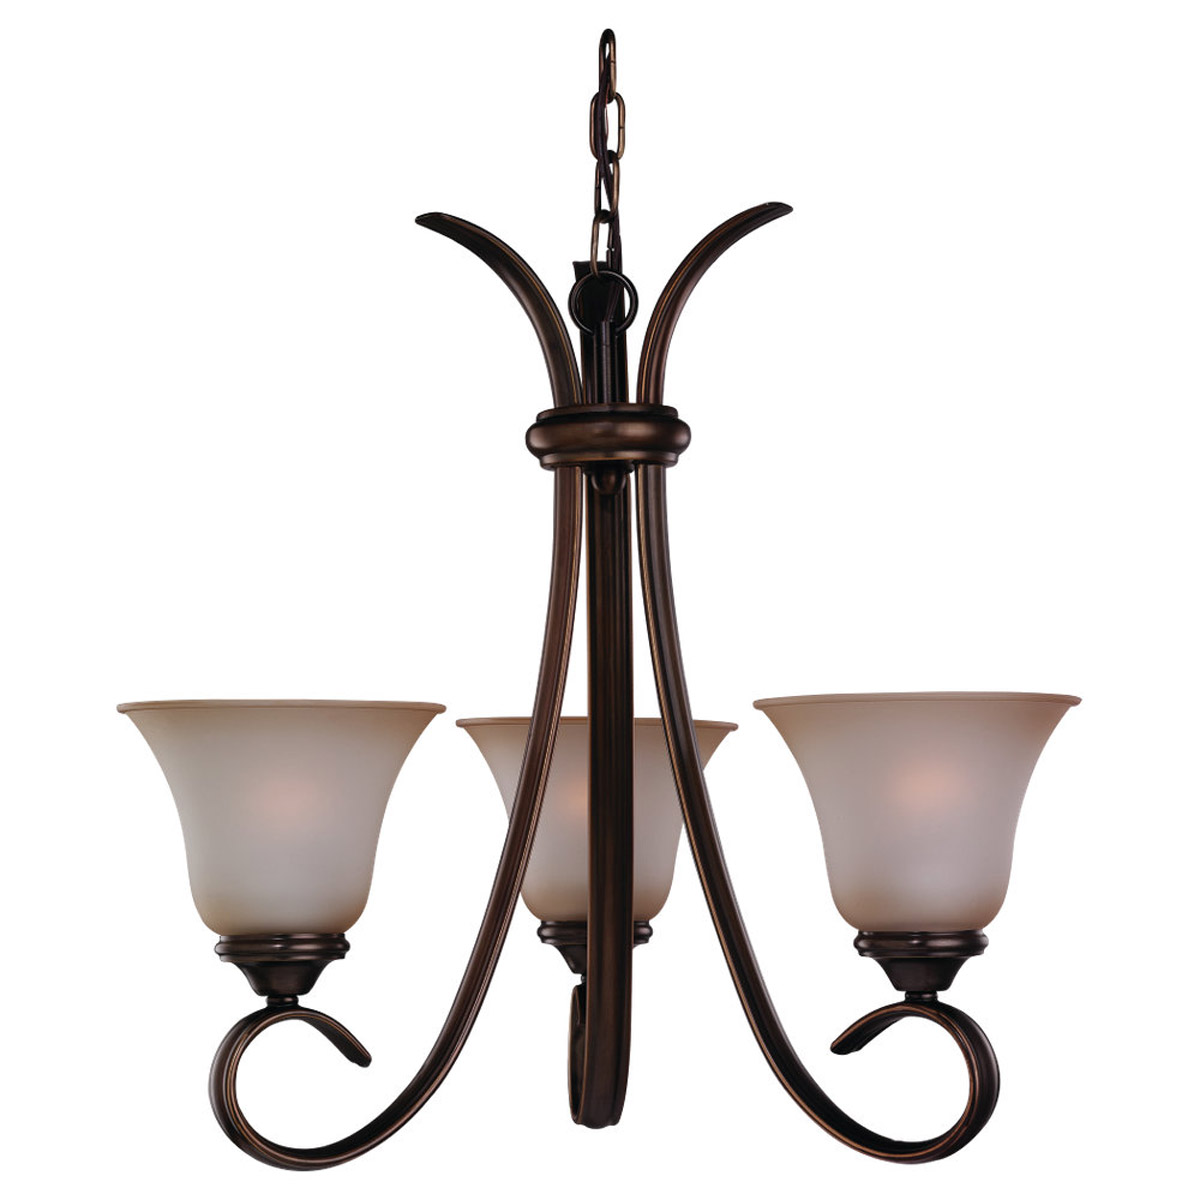 Sea Gull Lighting Rialto 3 Light Chandelier in Russet Bronze 31360-829 photo